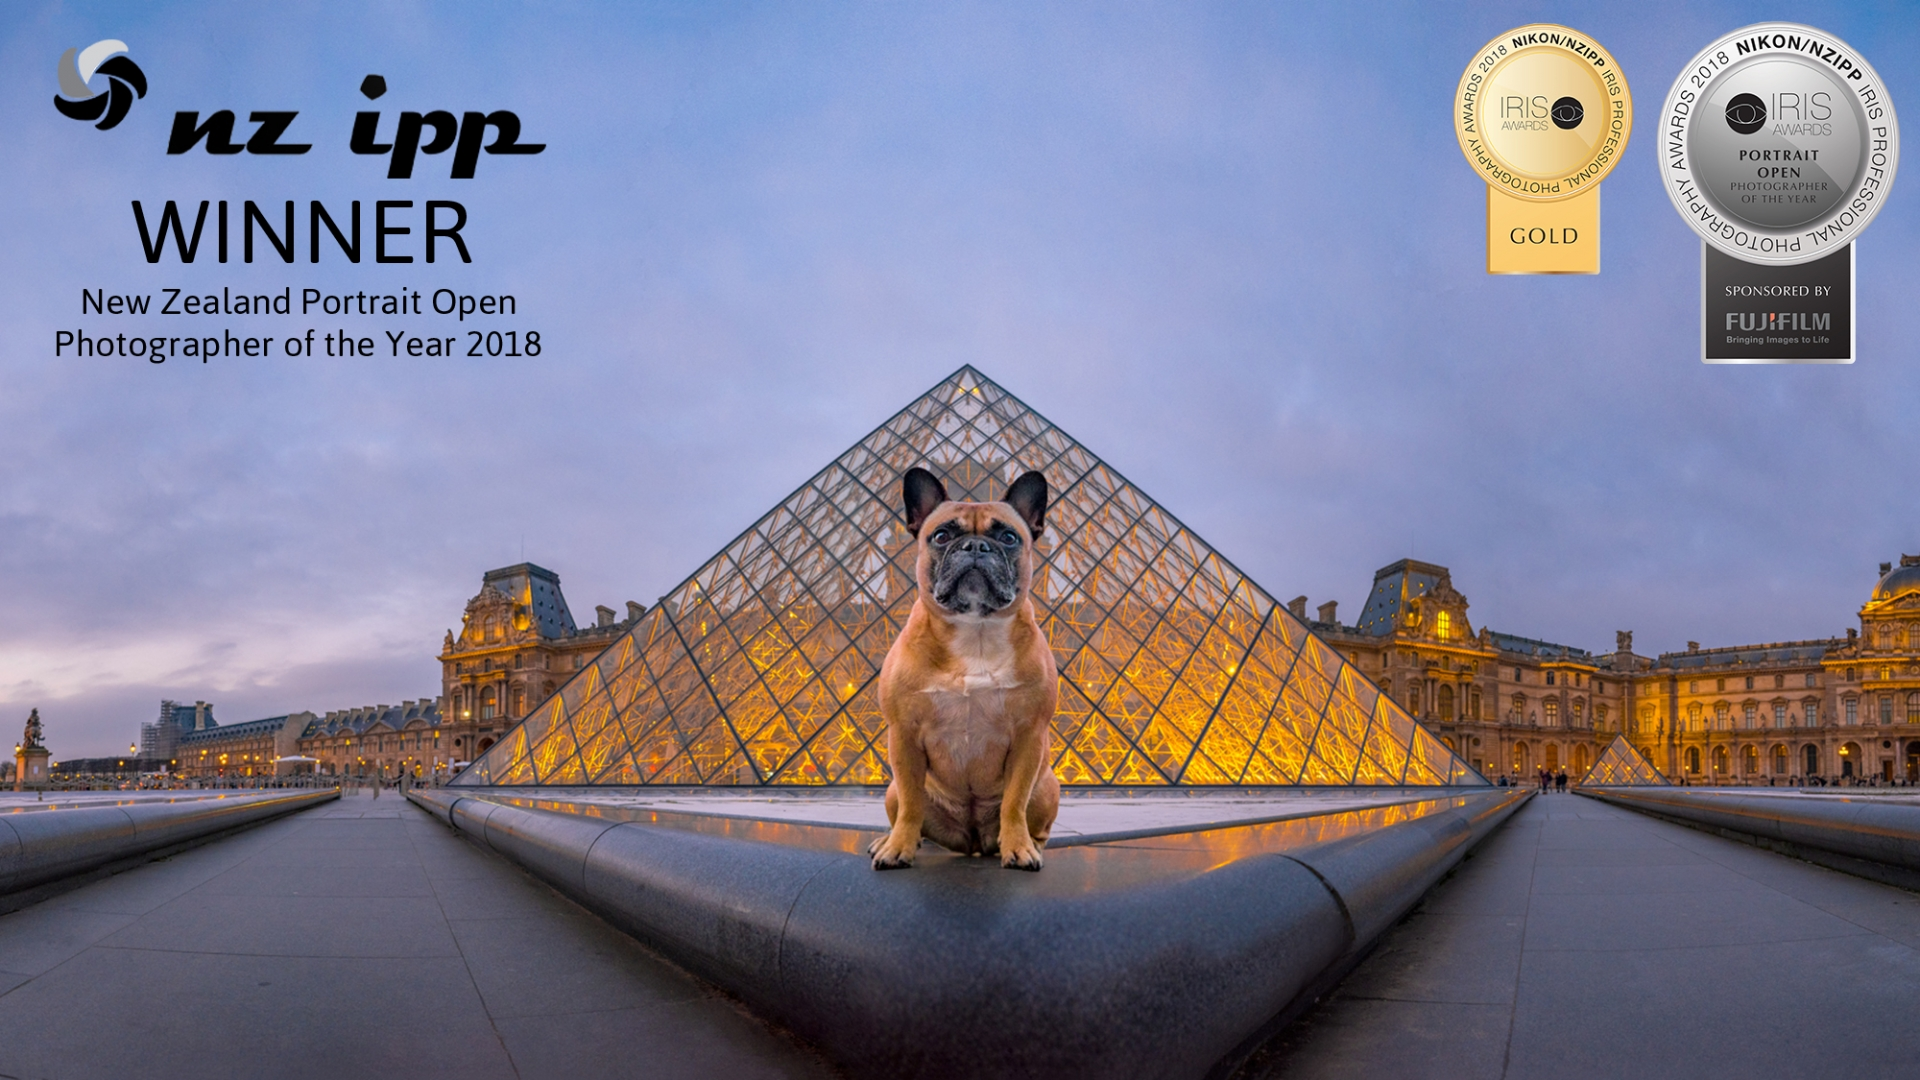 01 Paris Frenchie Portrait Photographer of the year Iris gold nzipp